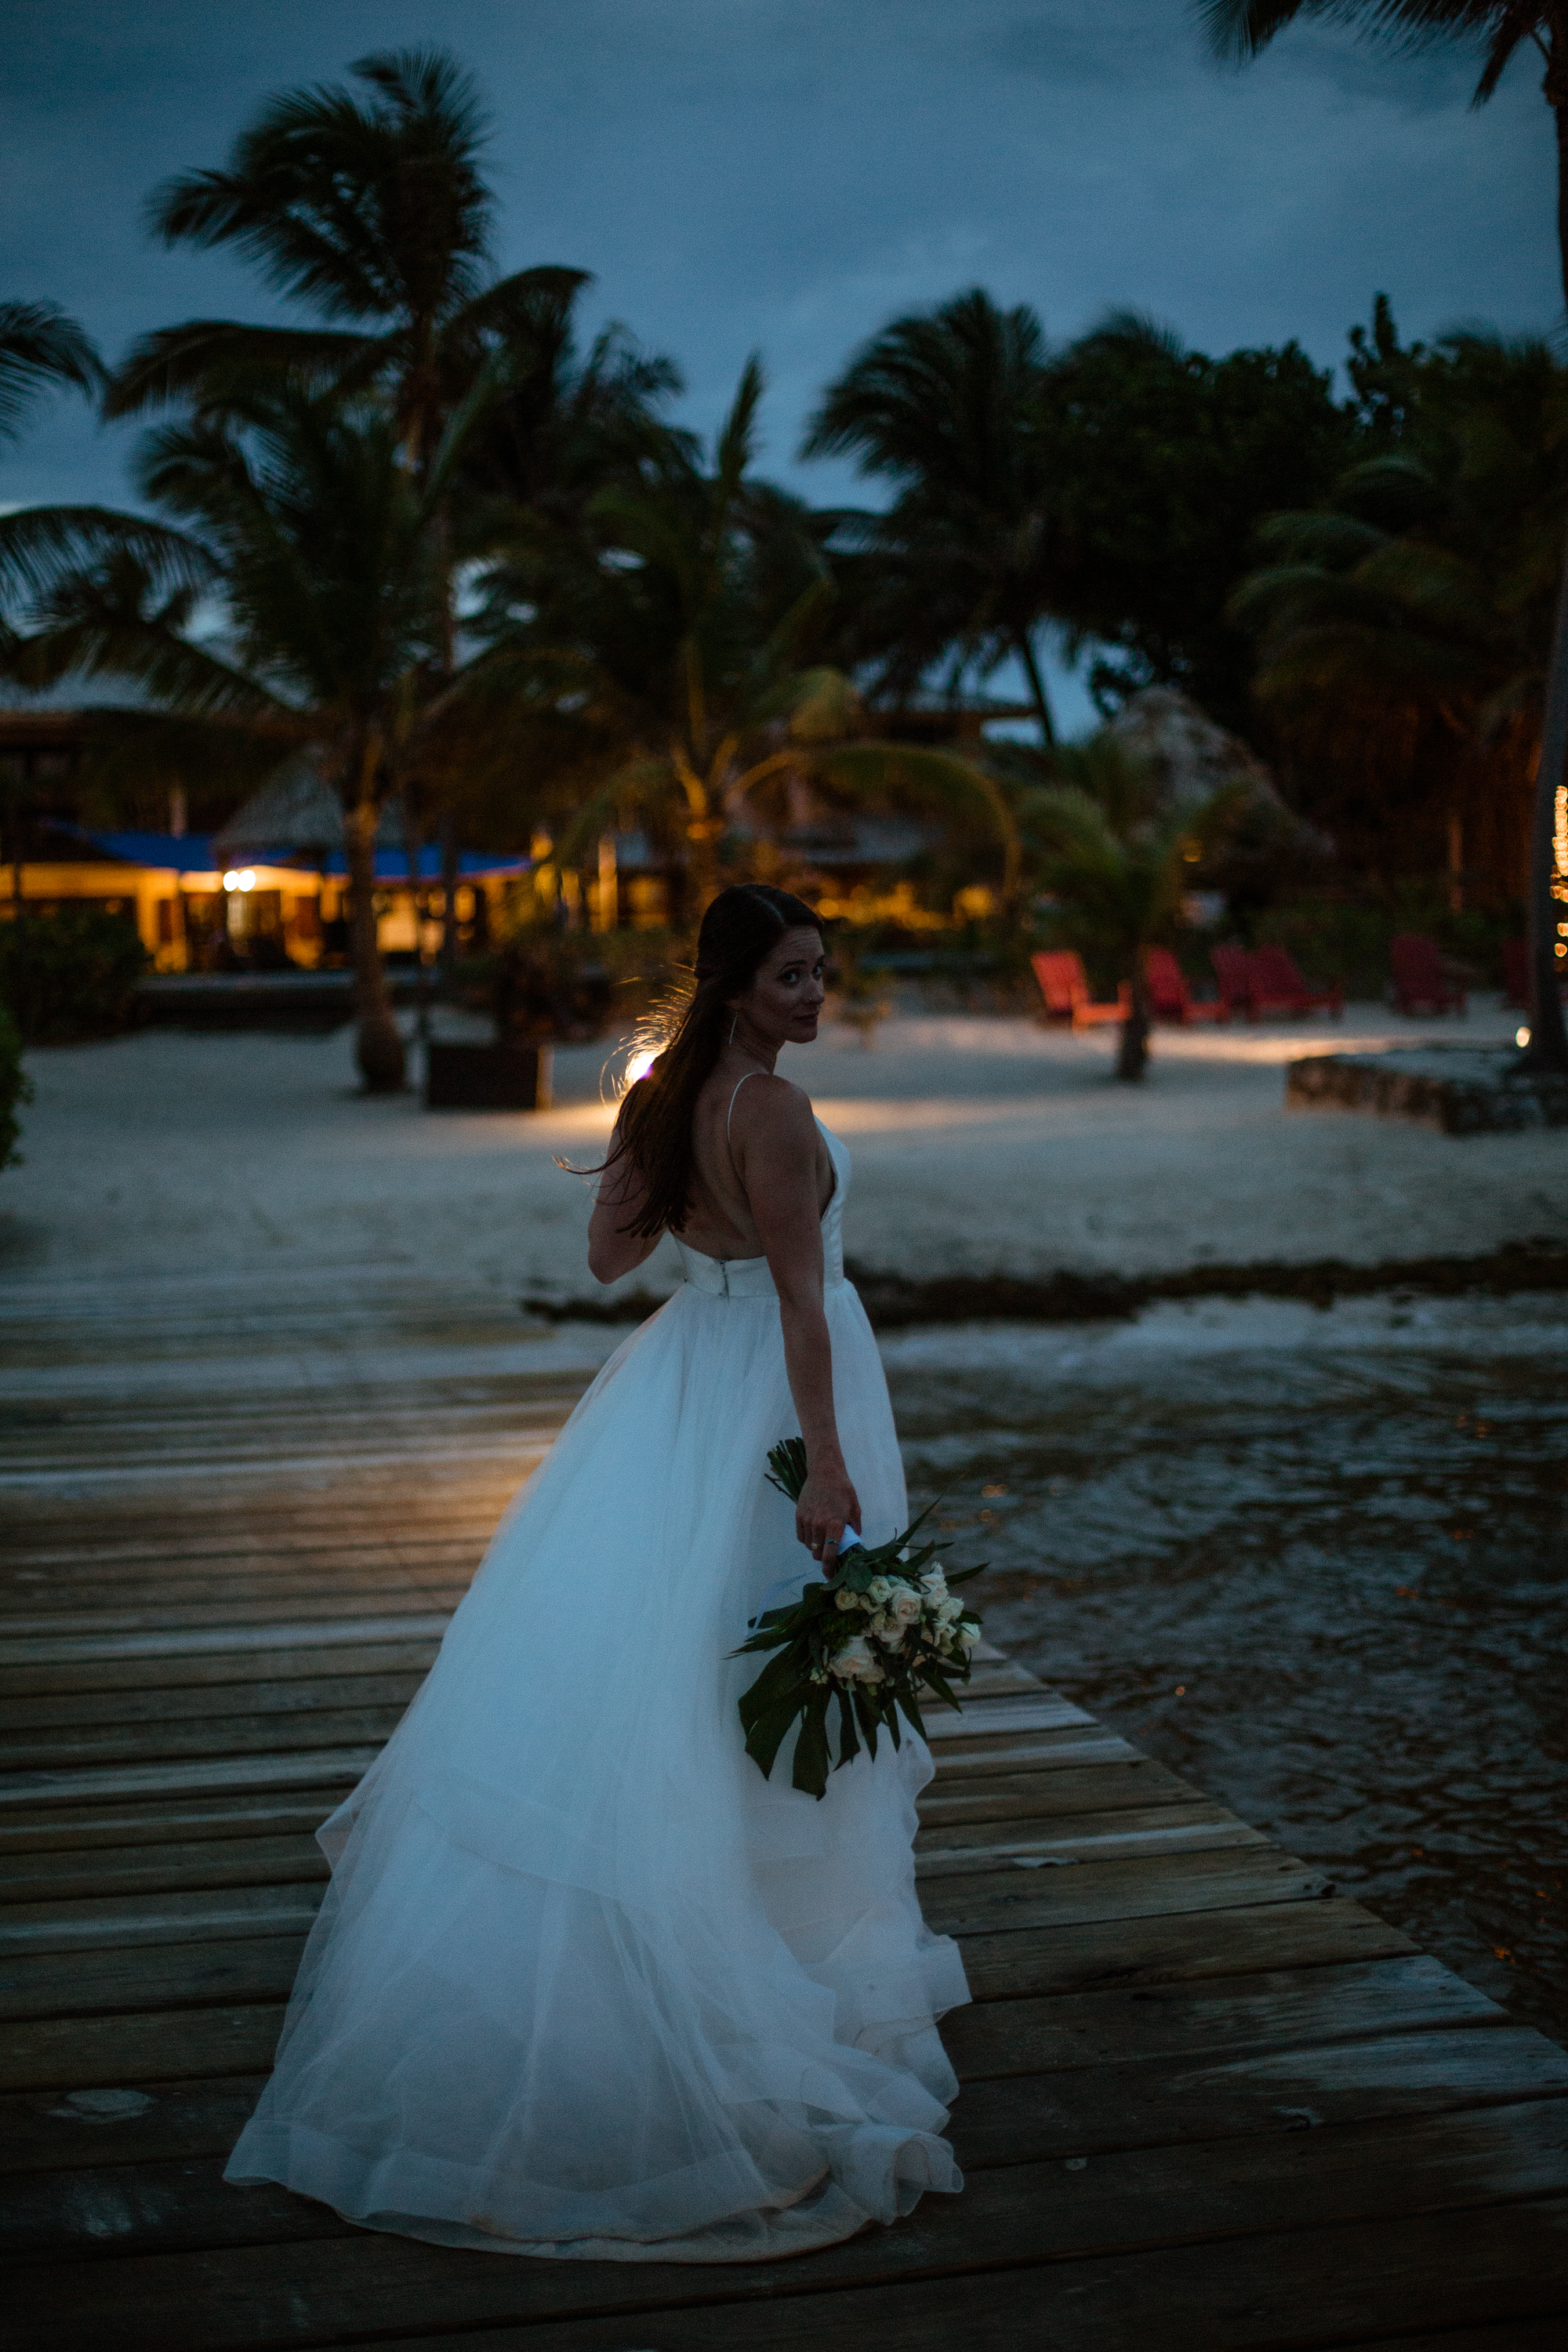 san-pescador-belize-wedding-christinemariephoto-j-k-155.jpg